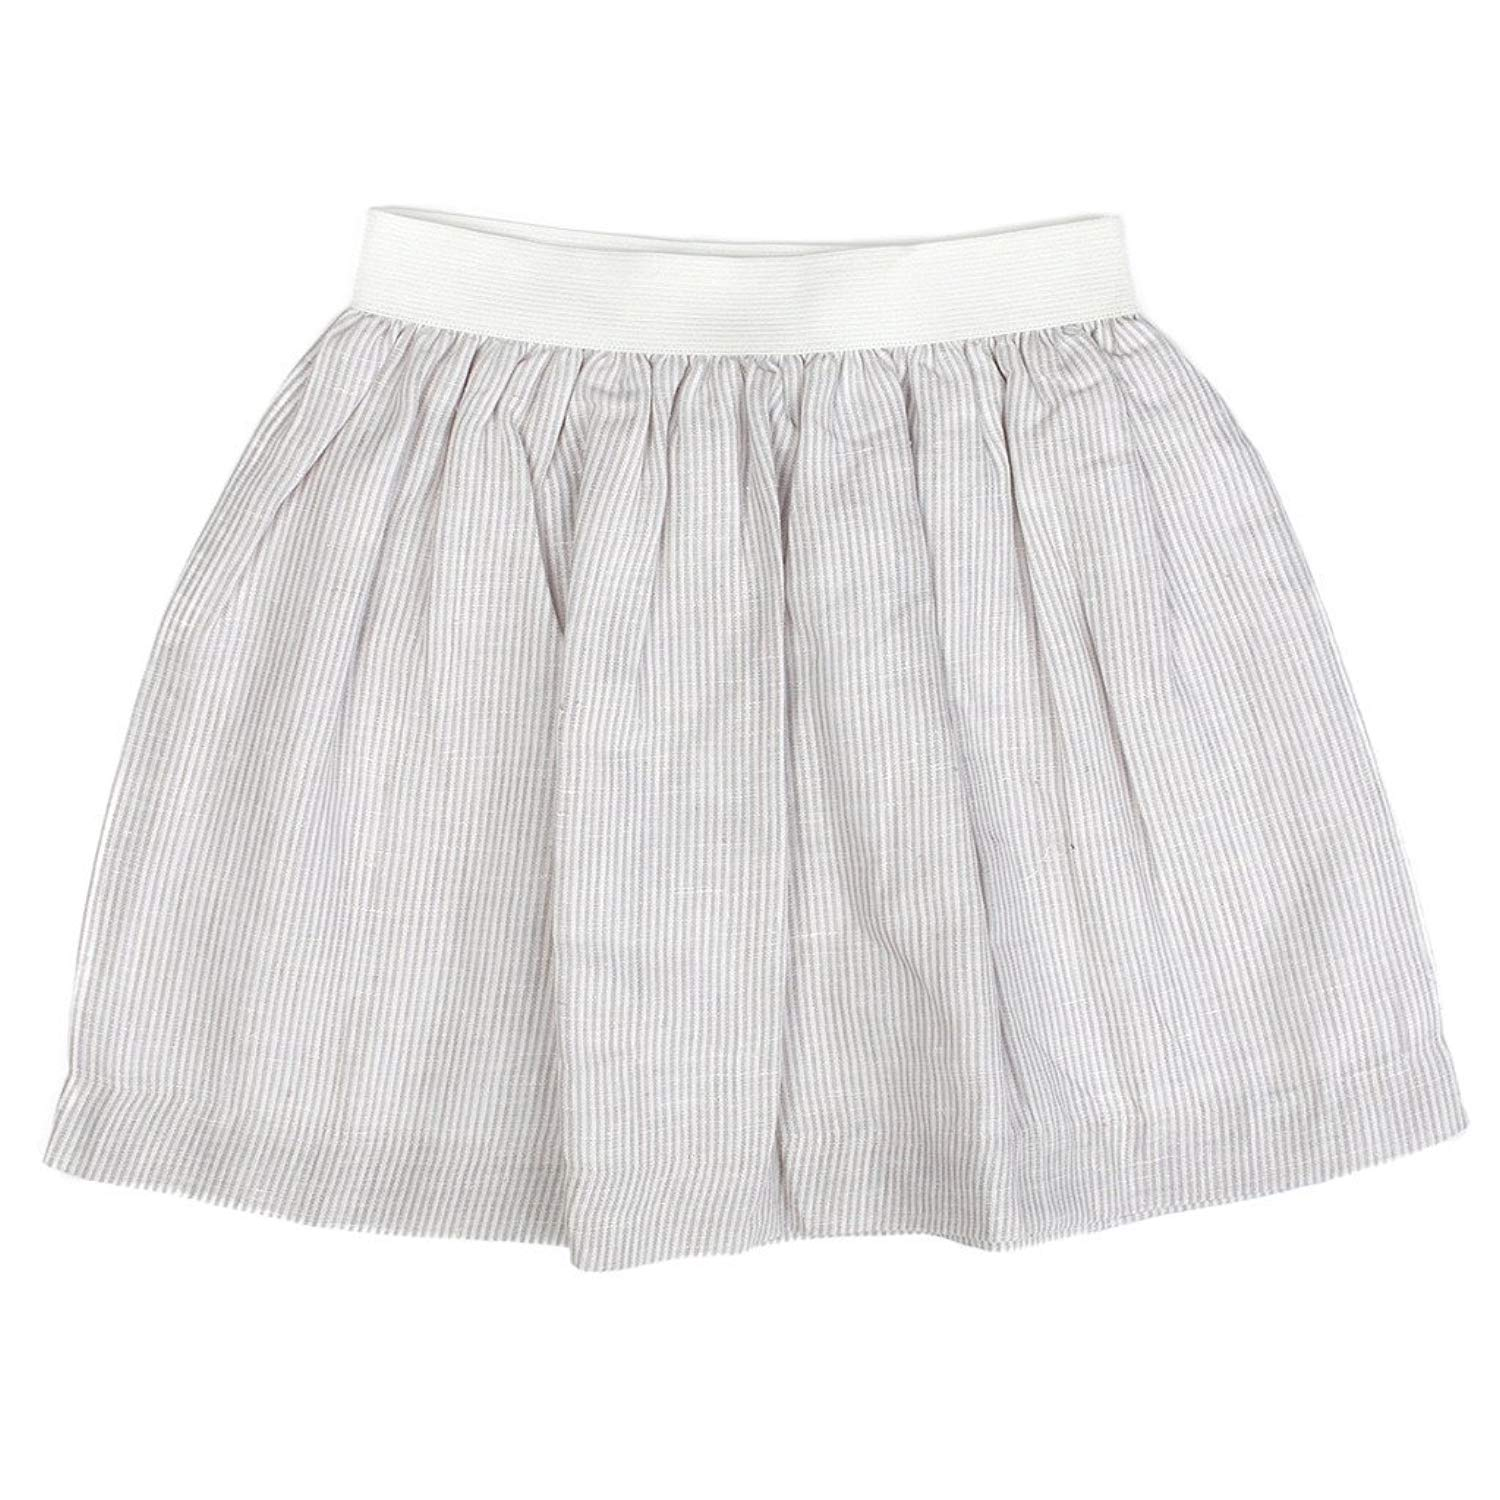 Piccino Piccina P&P Baby Girl Classic Spring Skirt - Family Outing Tan, 7 Years